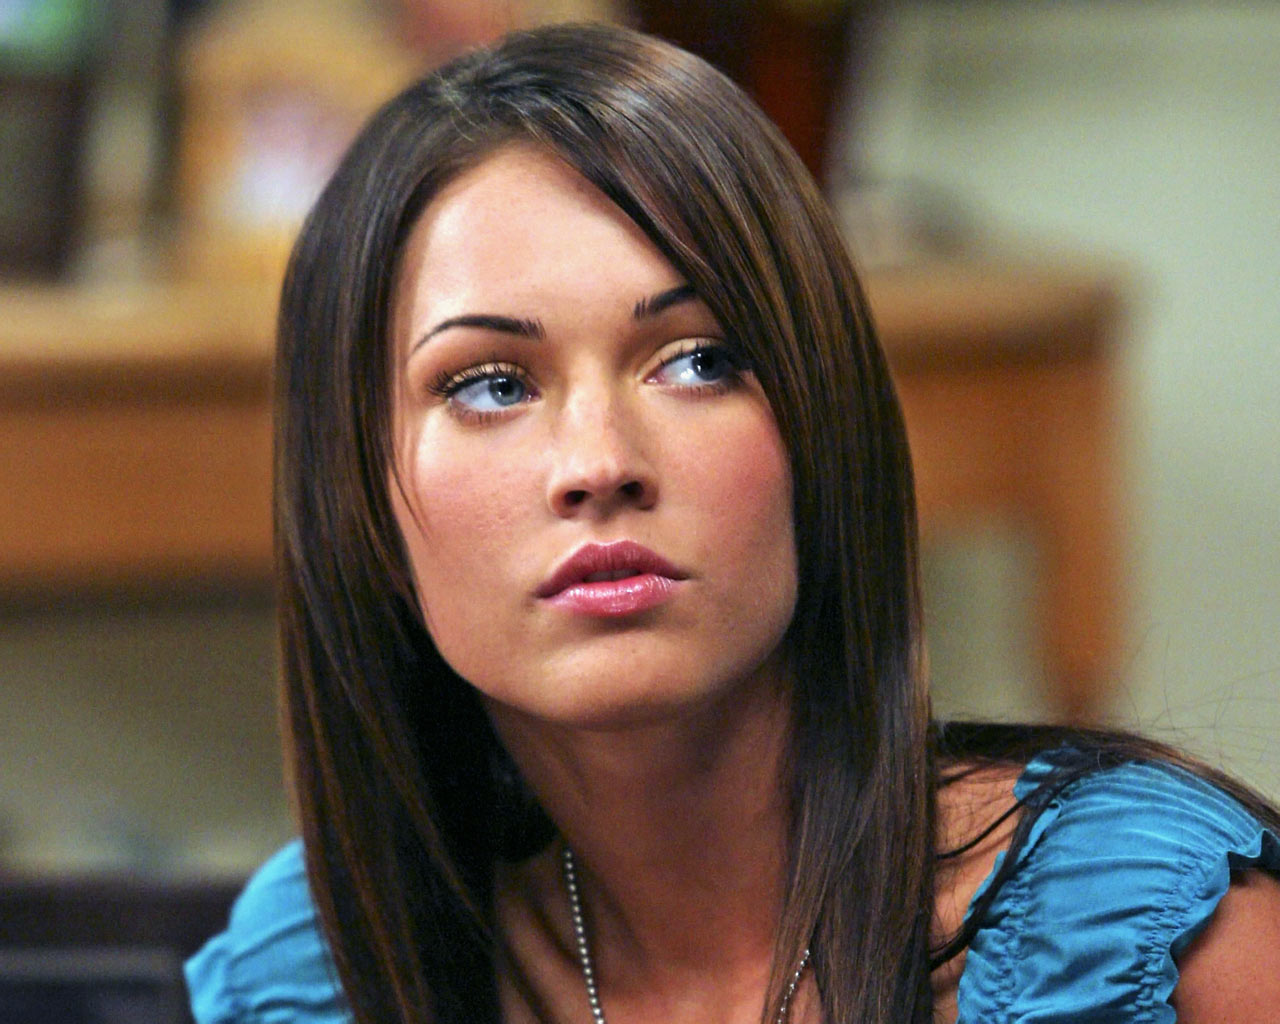 http://images.fanpop.com/images/image_uploads/Megan-Fox-megan-fox-76381_1280_1024.jpg